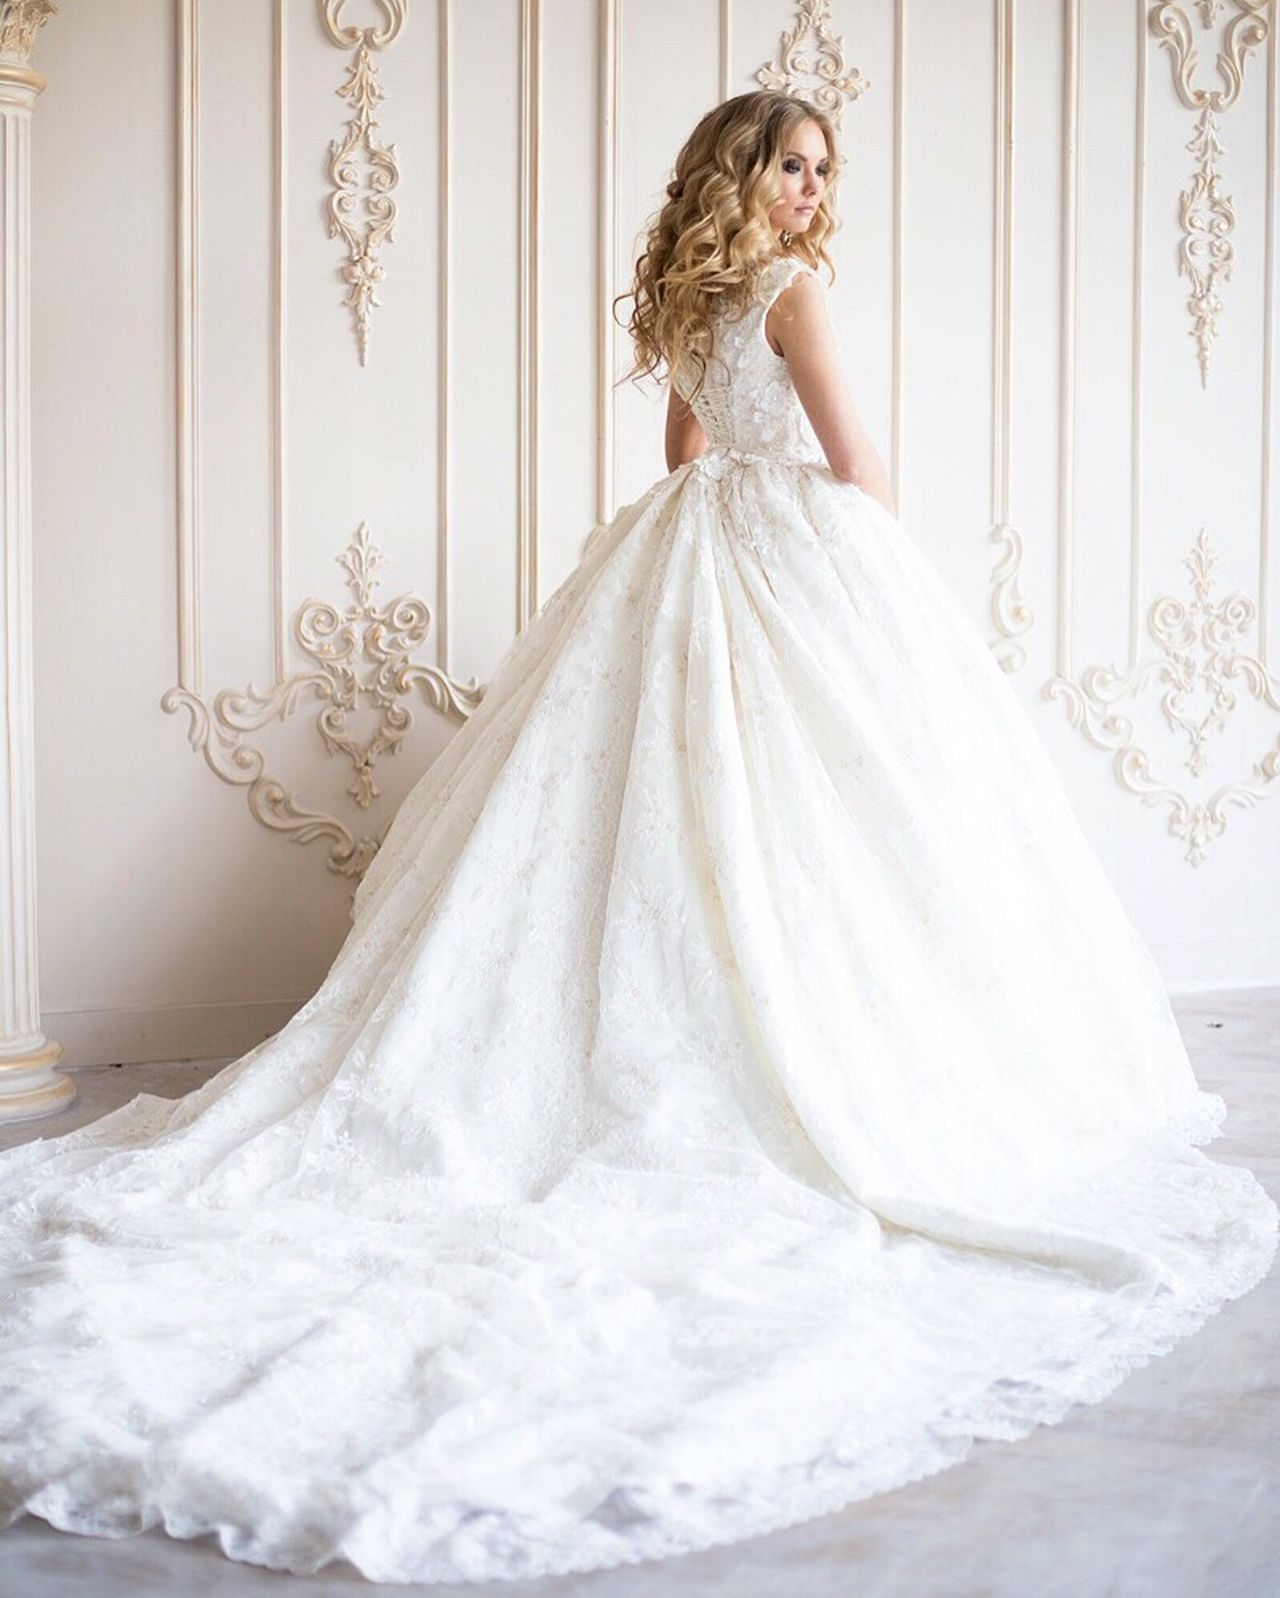 Beautiful stock photos of prinzessin, one woman only, wedding dress, beauty, bride